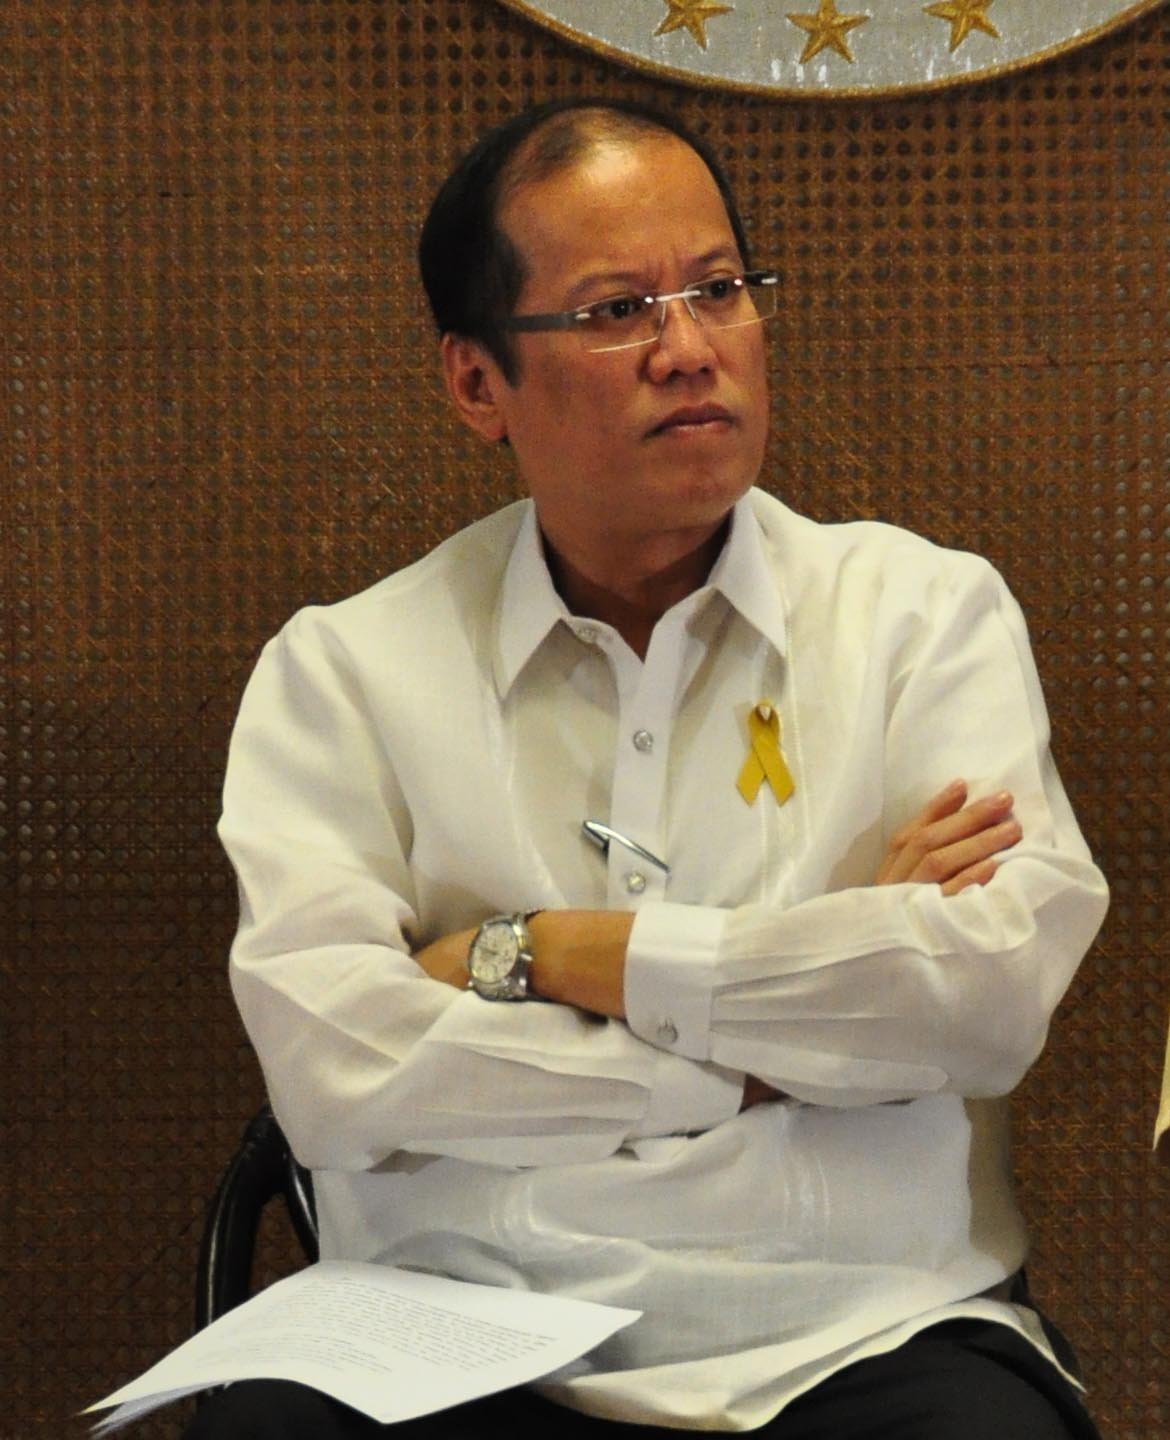 Aquino and sisters crime syndicate